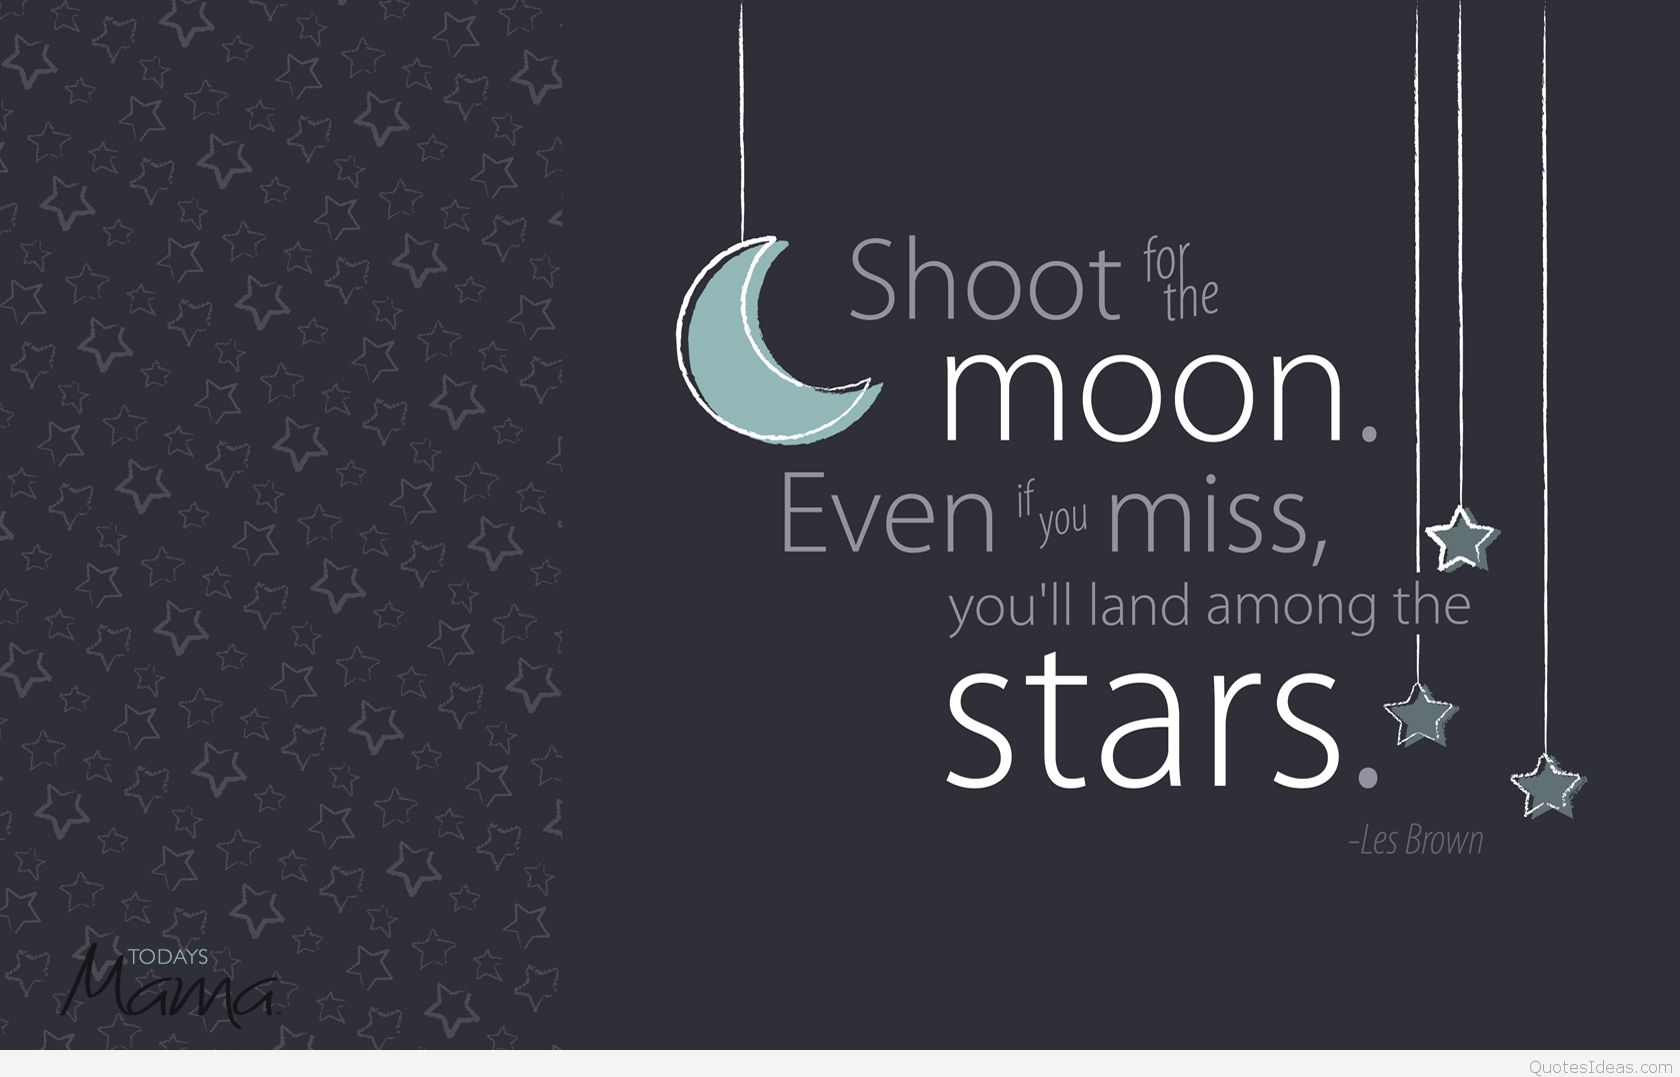 Quotes And Backgrounds (16 Wallpapers)